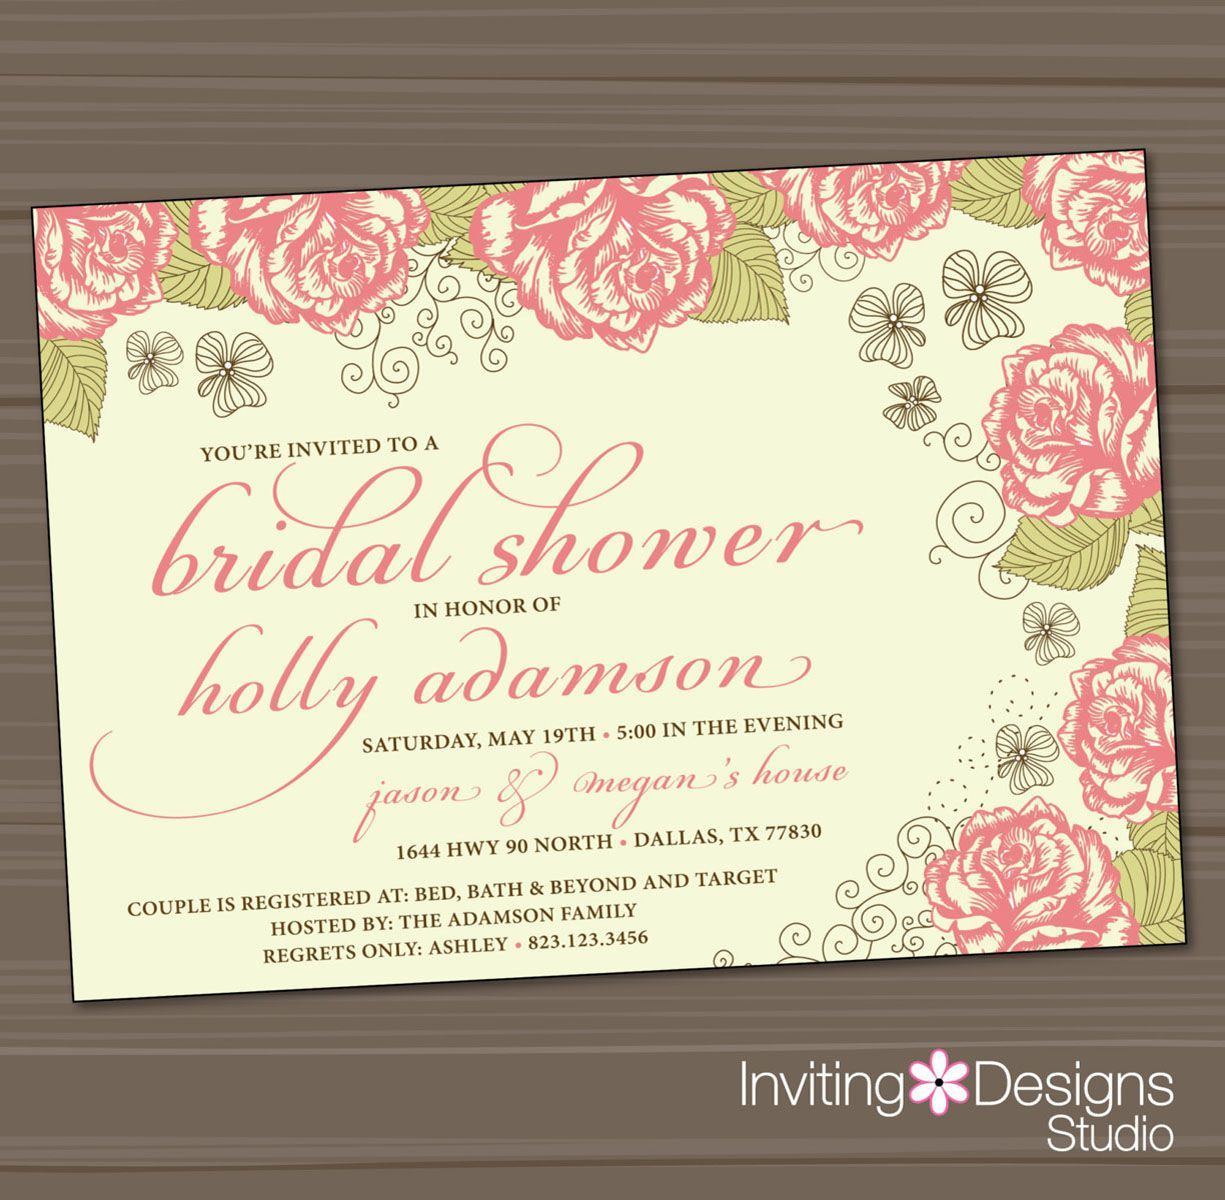 Have A Memorable Day with These Bridal Shower Ideas!   Bridal ...